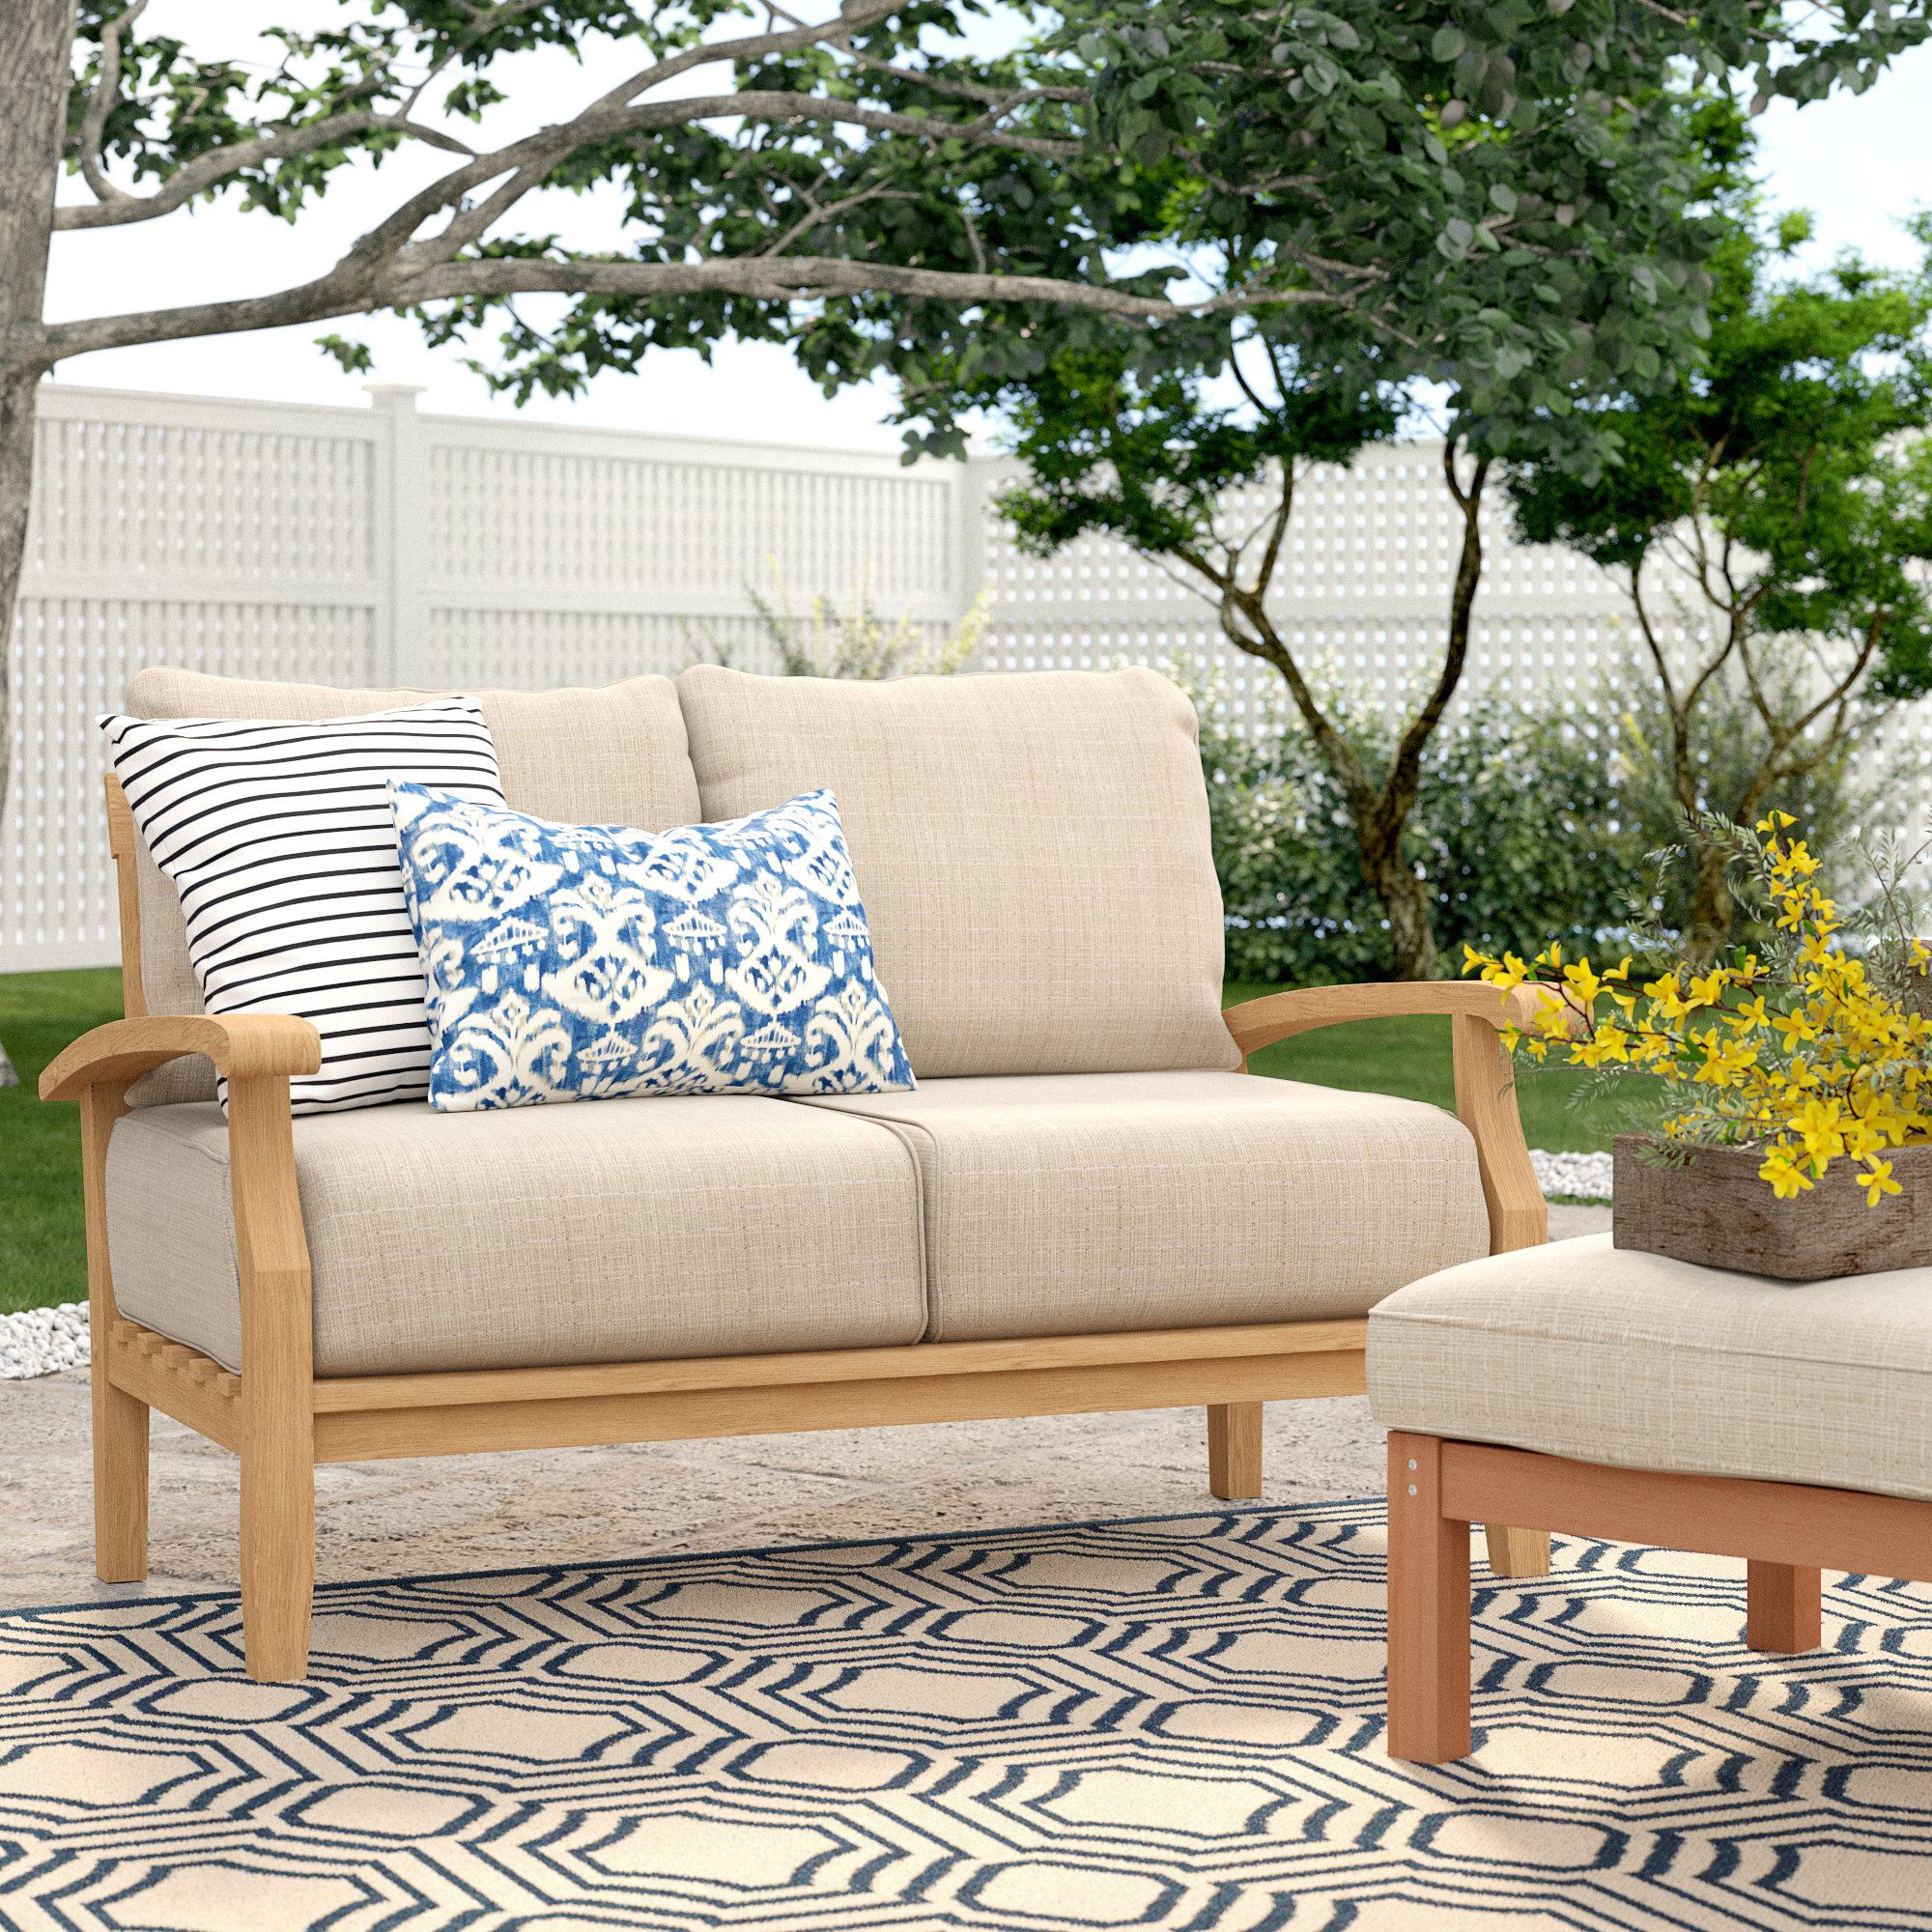 Teak Outdoor Sofas (View 19 of 20)